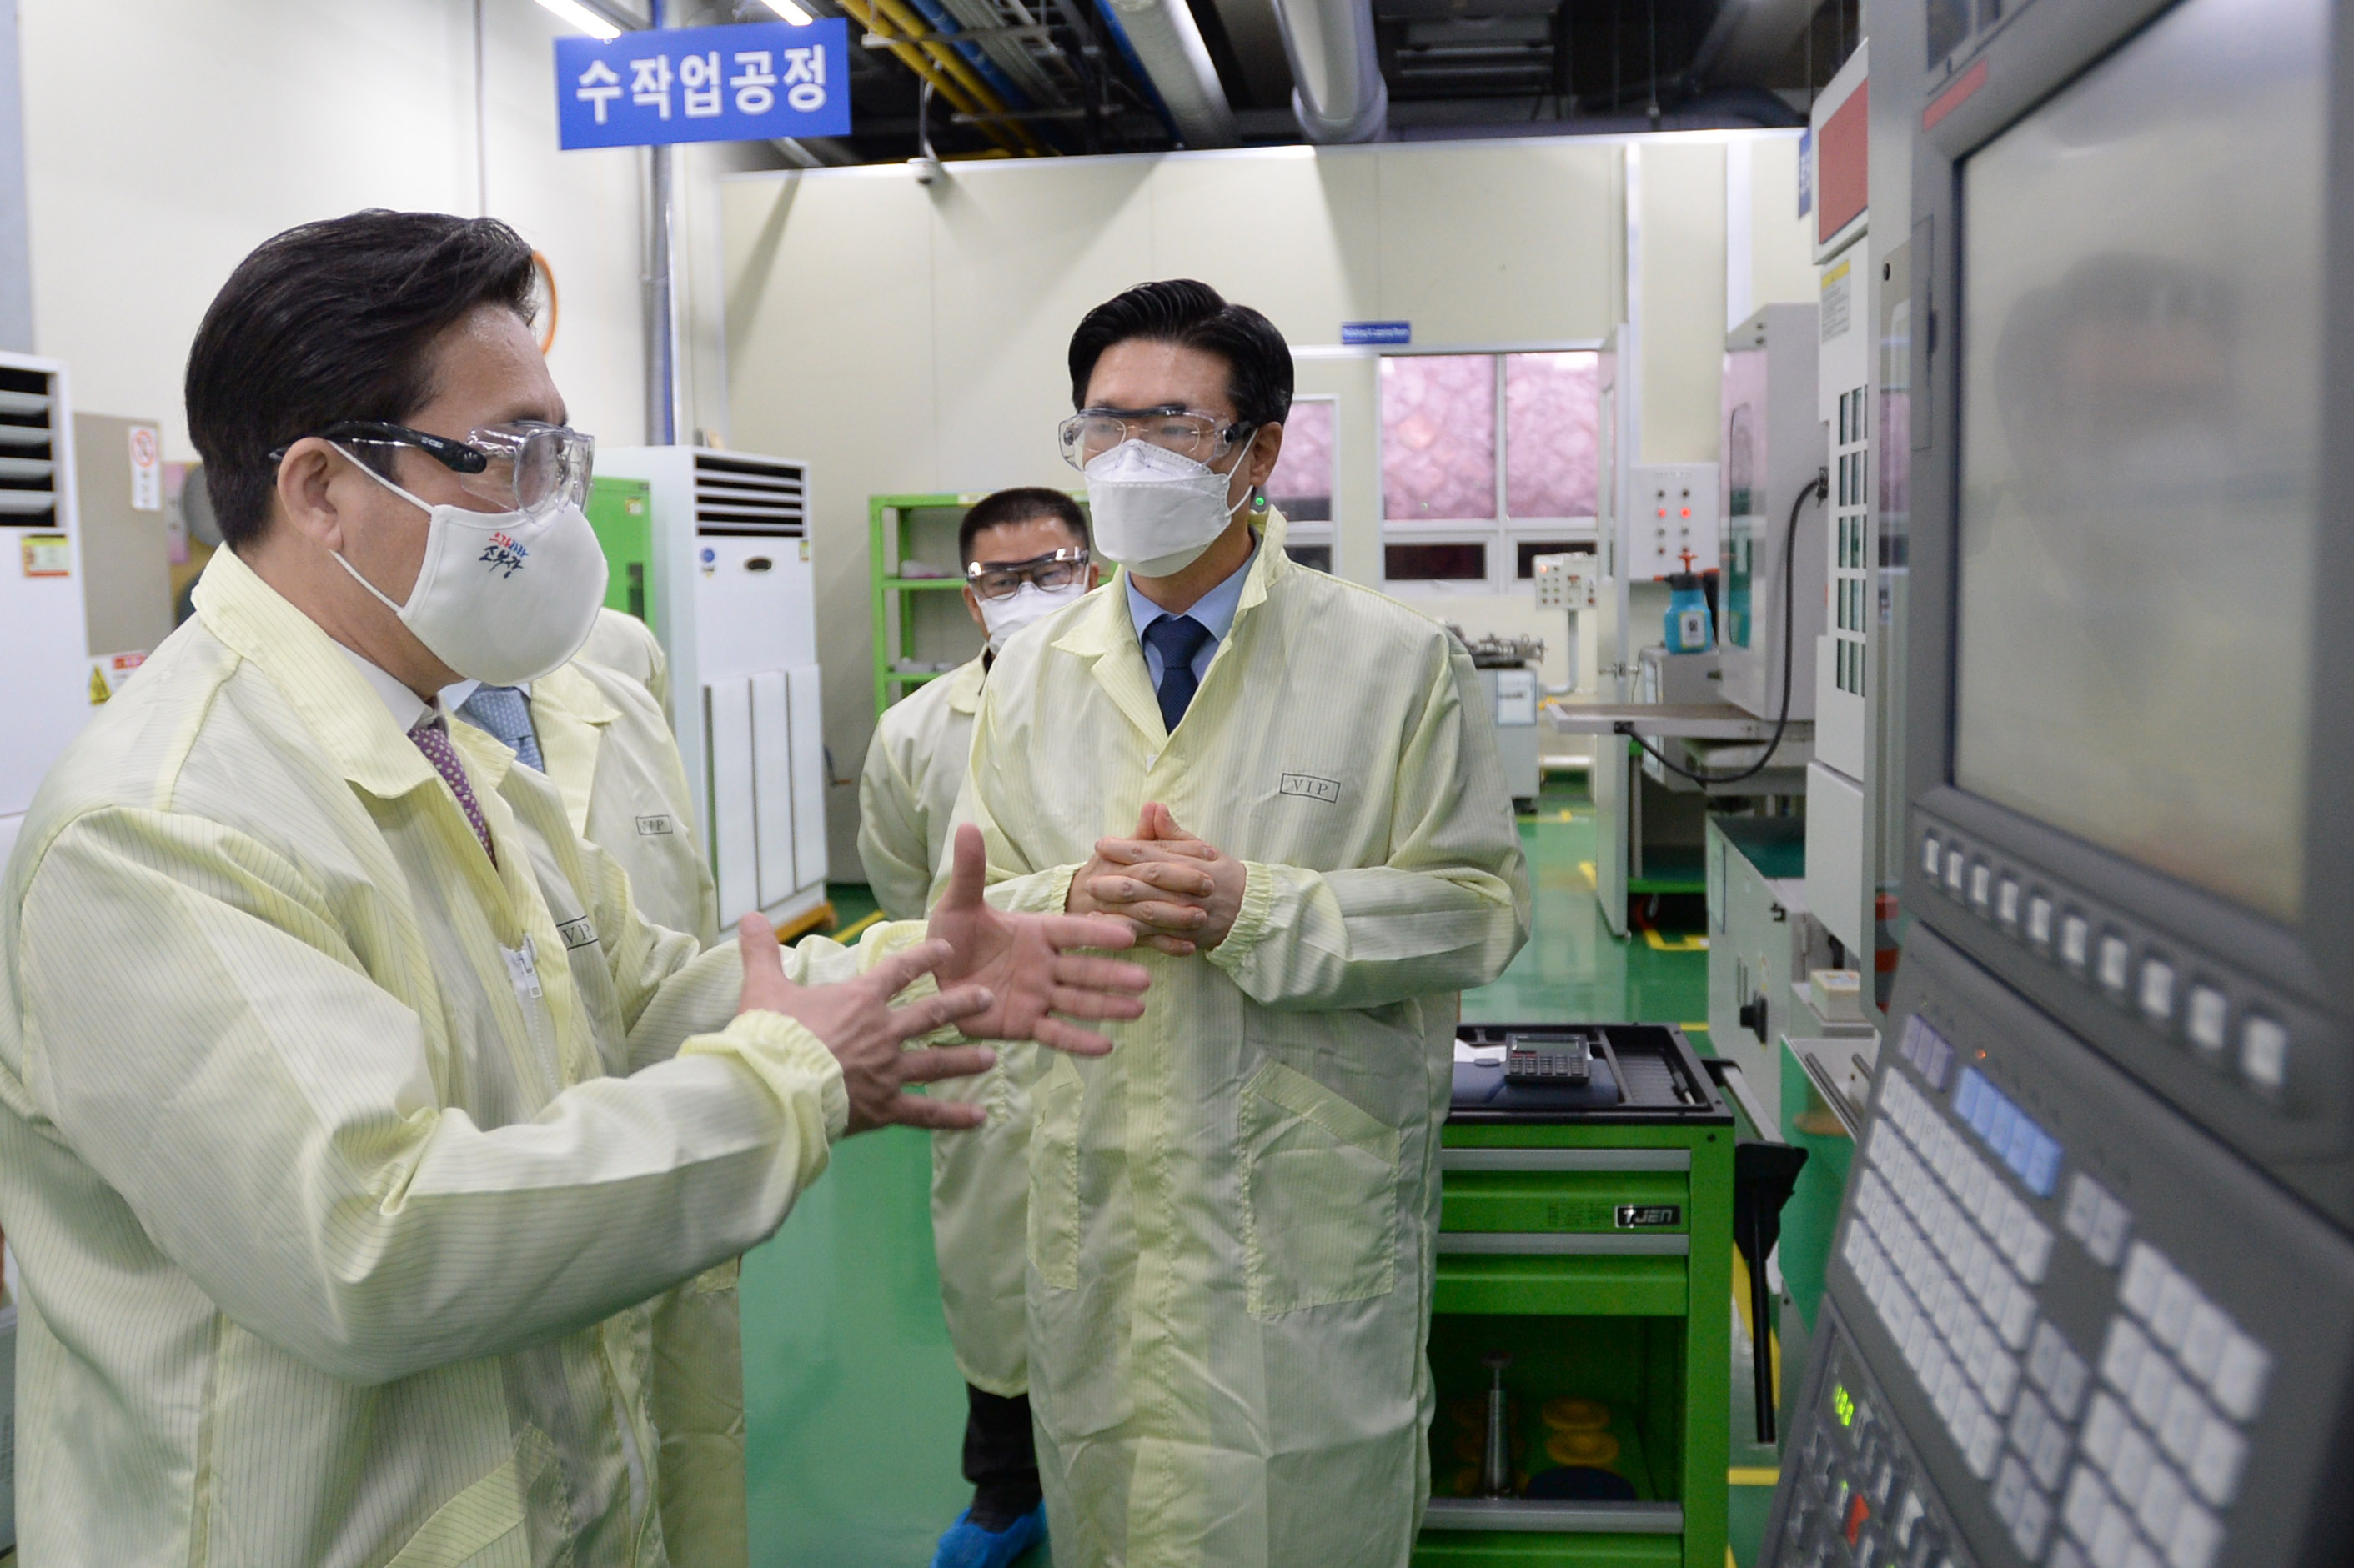 Minister Sung visits local producer of ceramic heaters under government R&D program Image 0